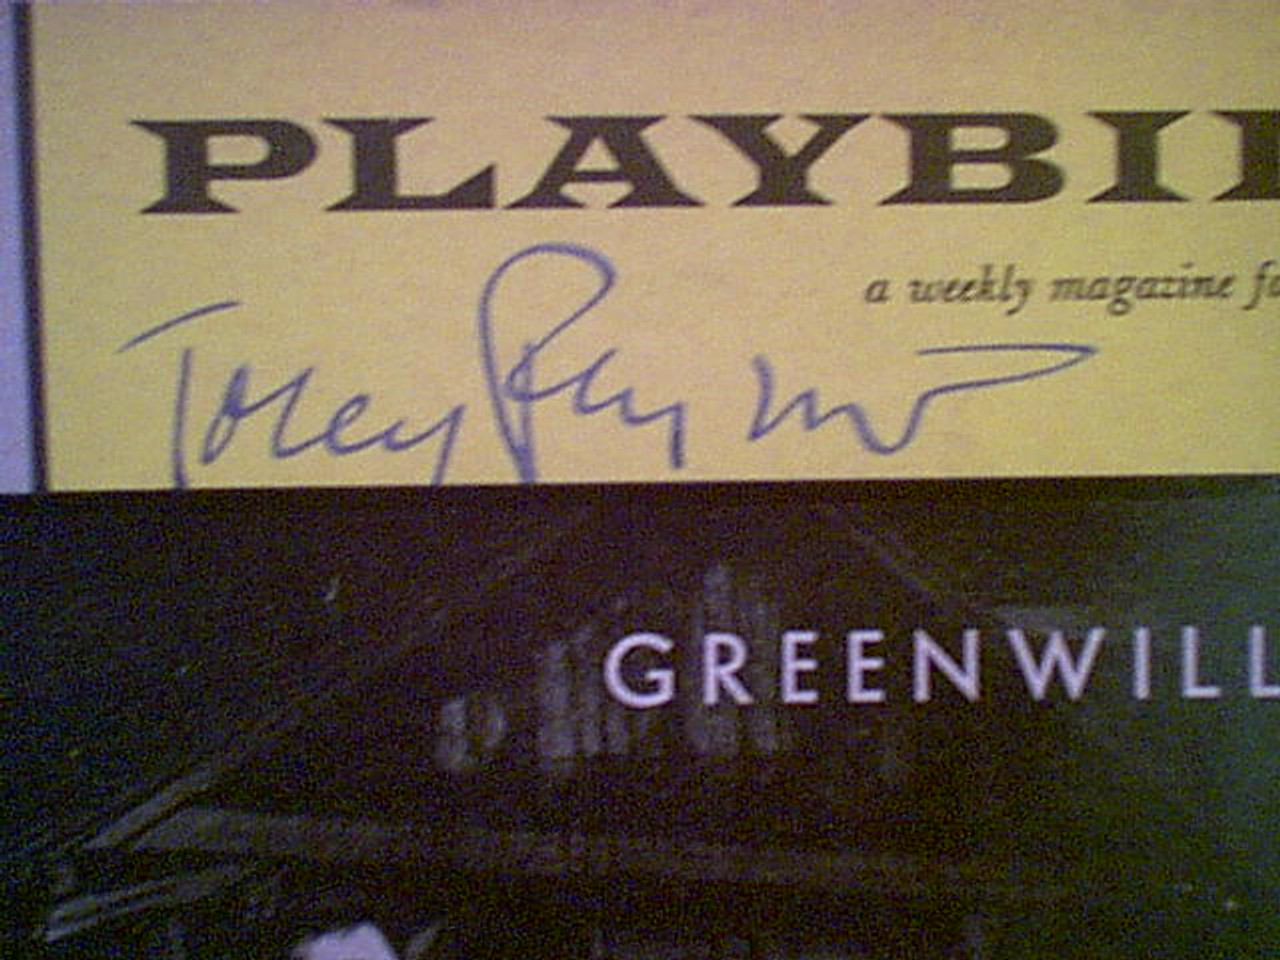 """Perkins, Tony Anthony """"Greenwillow"""" 1960 Playbill Signed Autograph Cover Photo"""